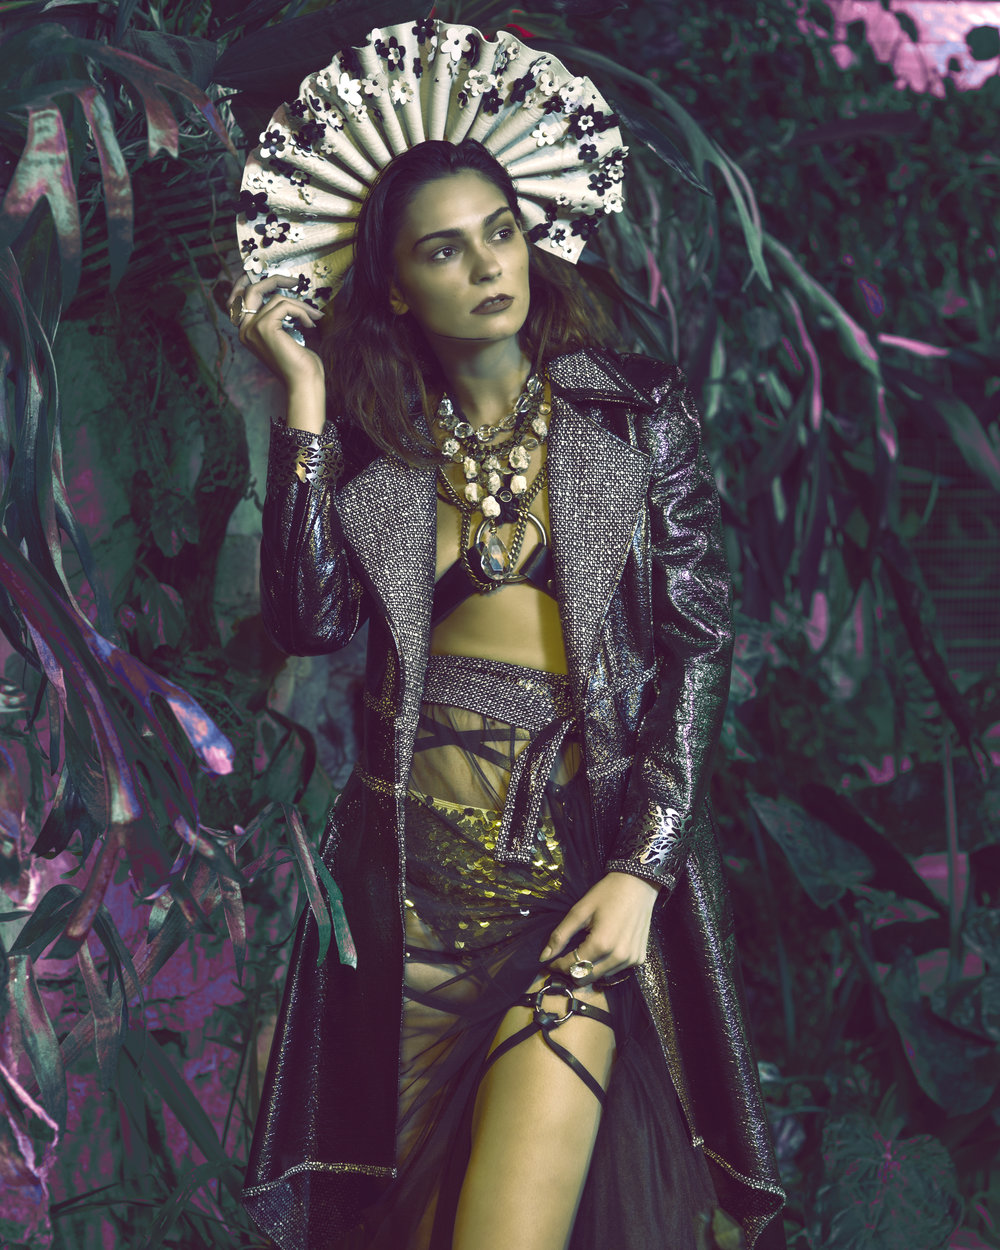 Trend Prive Magazine: Renascence - Photographer: Brad Austin / Stylist: Rachel Anne Gottlieb / Model: Shelby Smith / Hair: Morgan Giefer / Makeup: Hailey McFarland / Accessories: Ngan Vuong, Cheryl Eve Acosta, Sydney Pener Wardrobe: Natalia Meyer, Tabbetha Evans